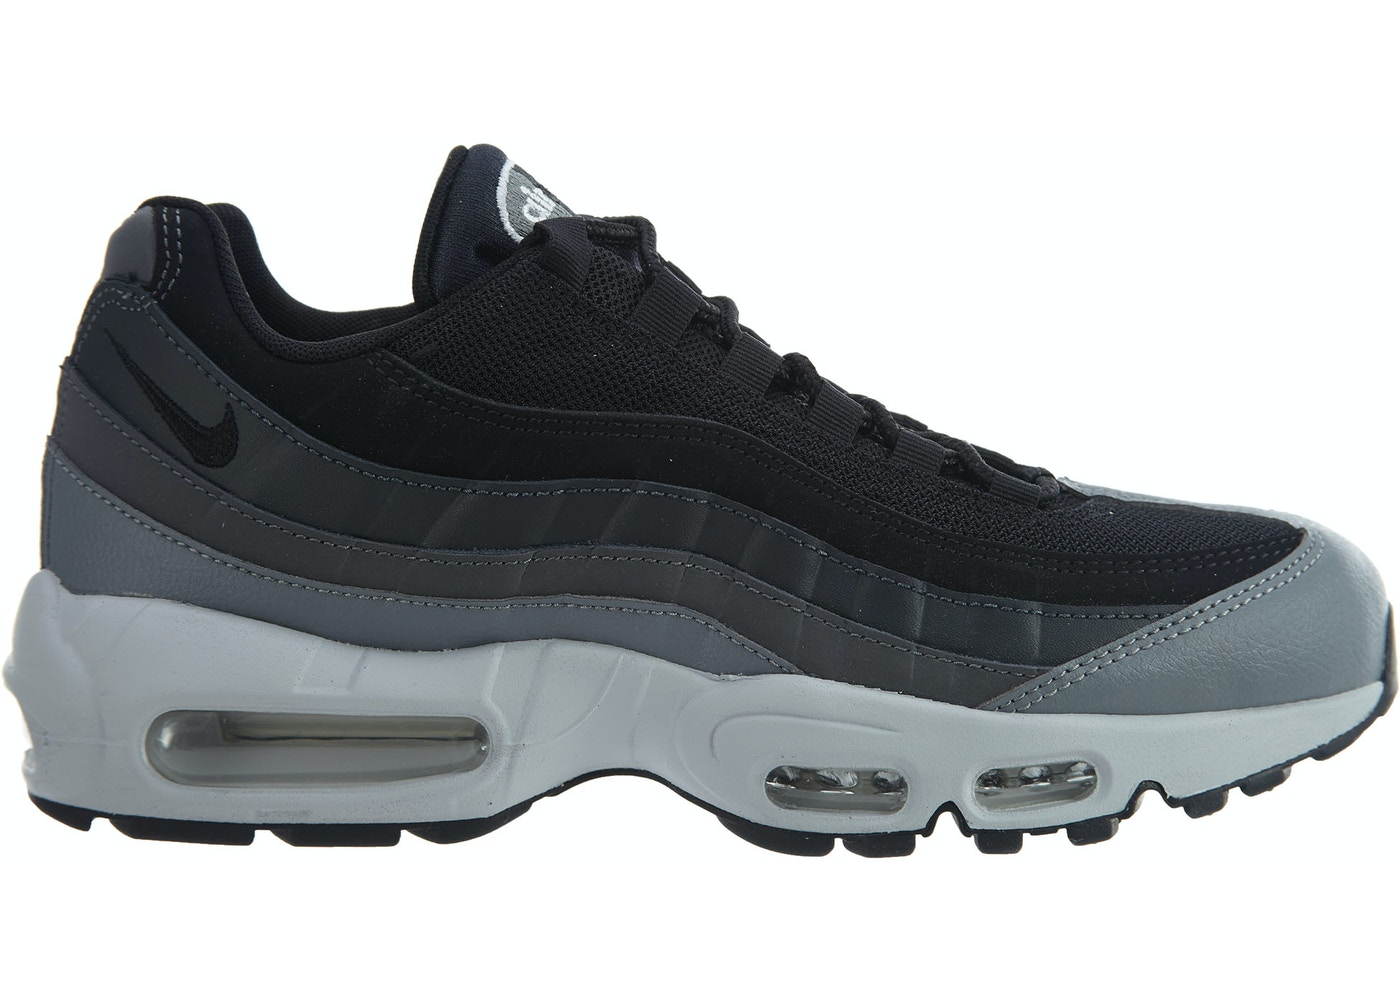 reputable site 9ff74 3ca23 Nike Air Max 95 Essential Black/Black-Anthracite